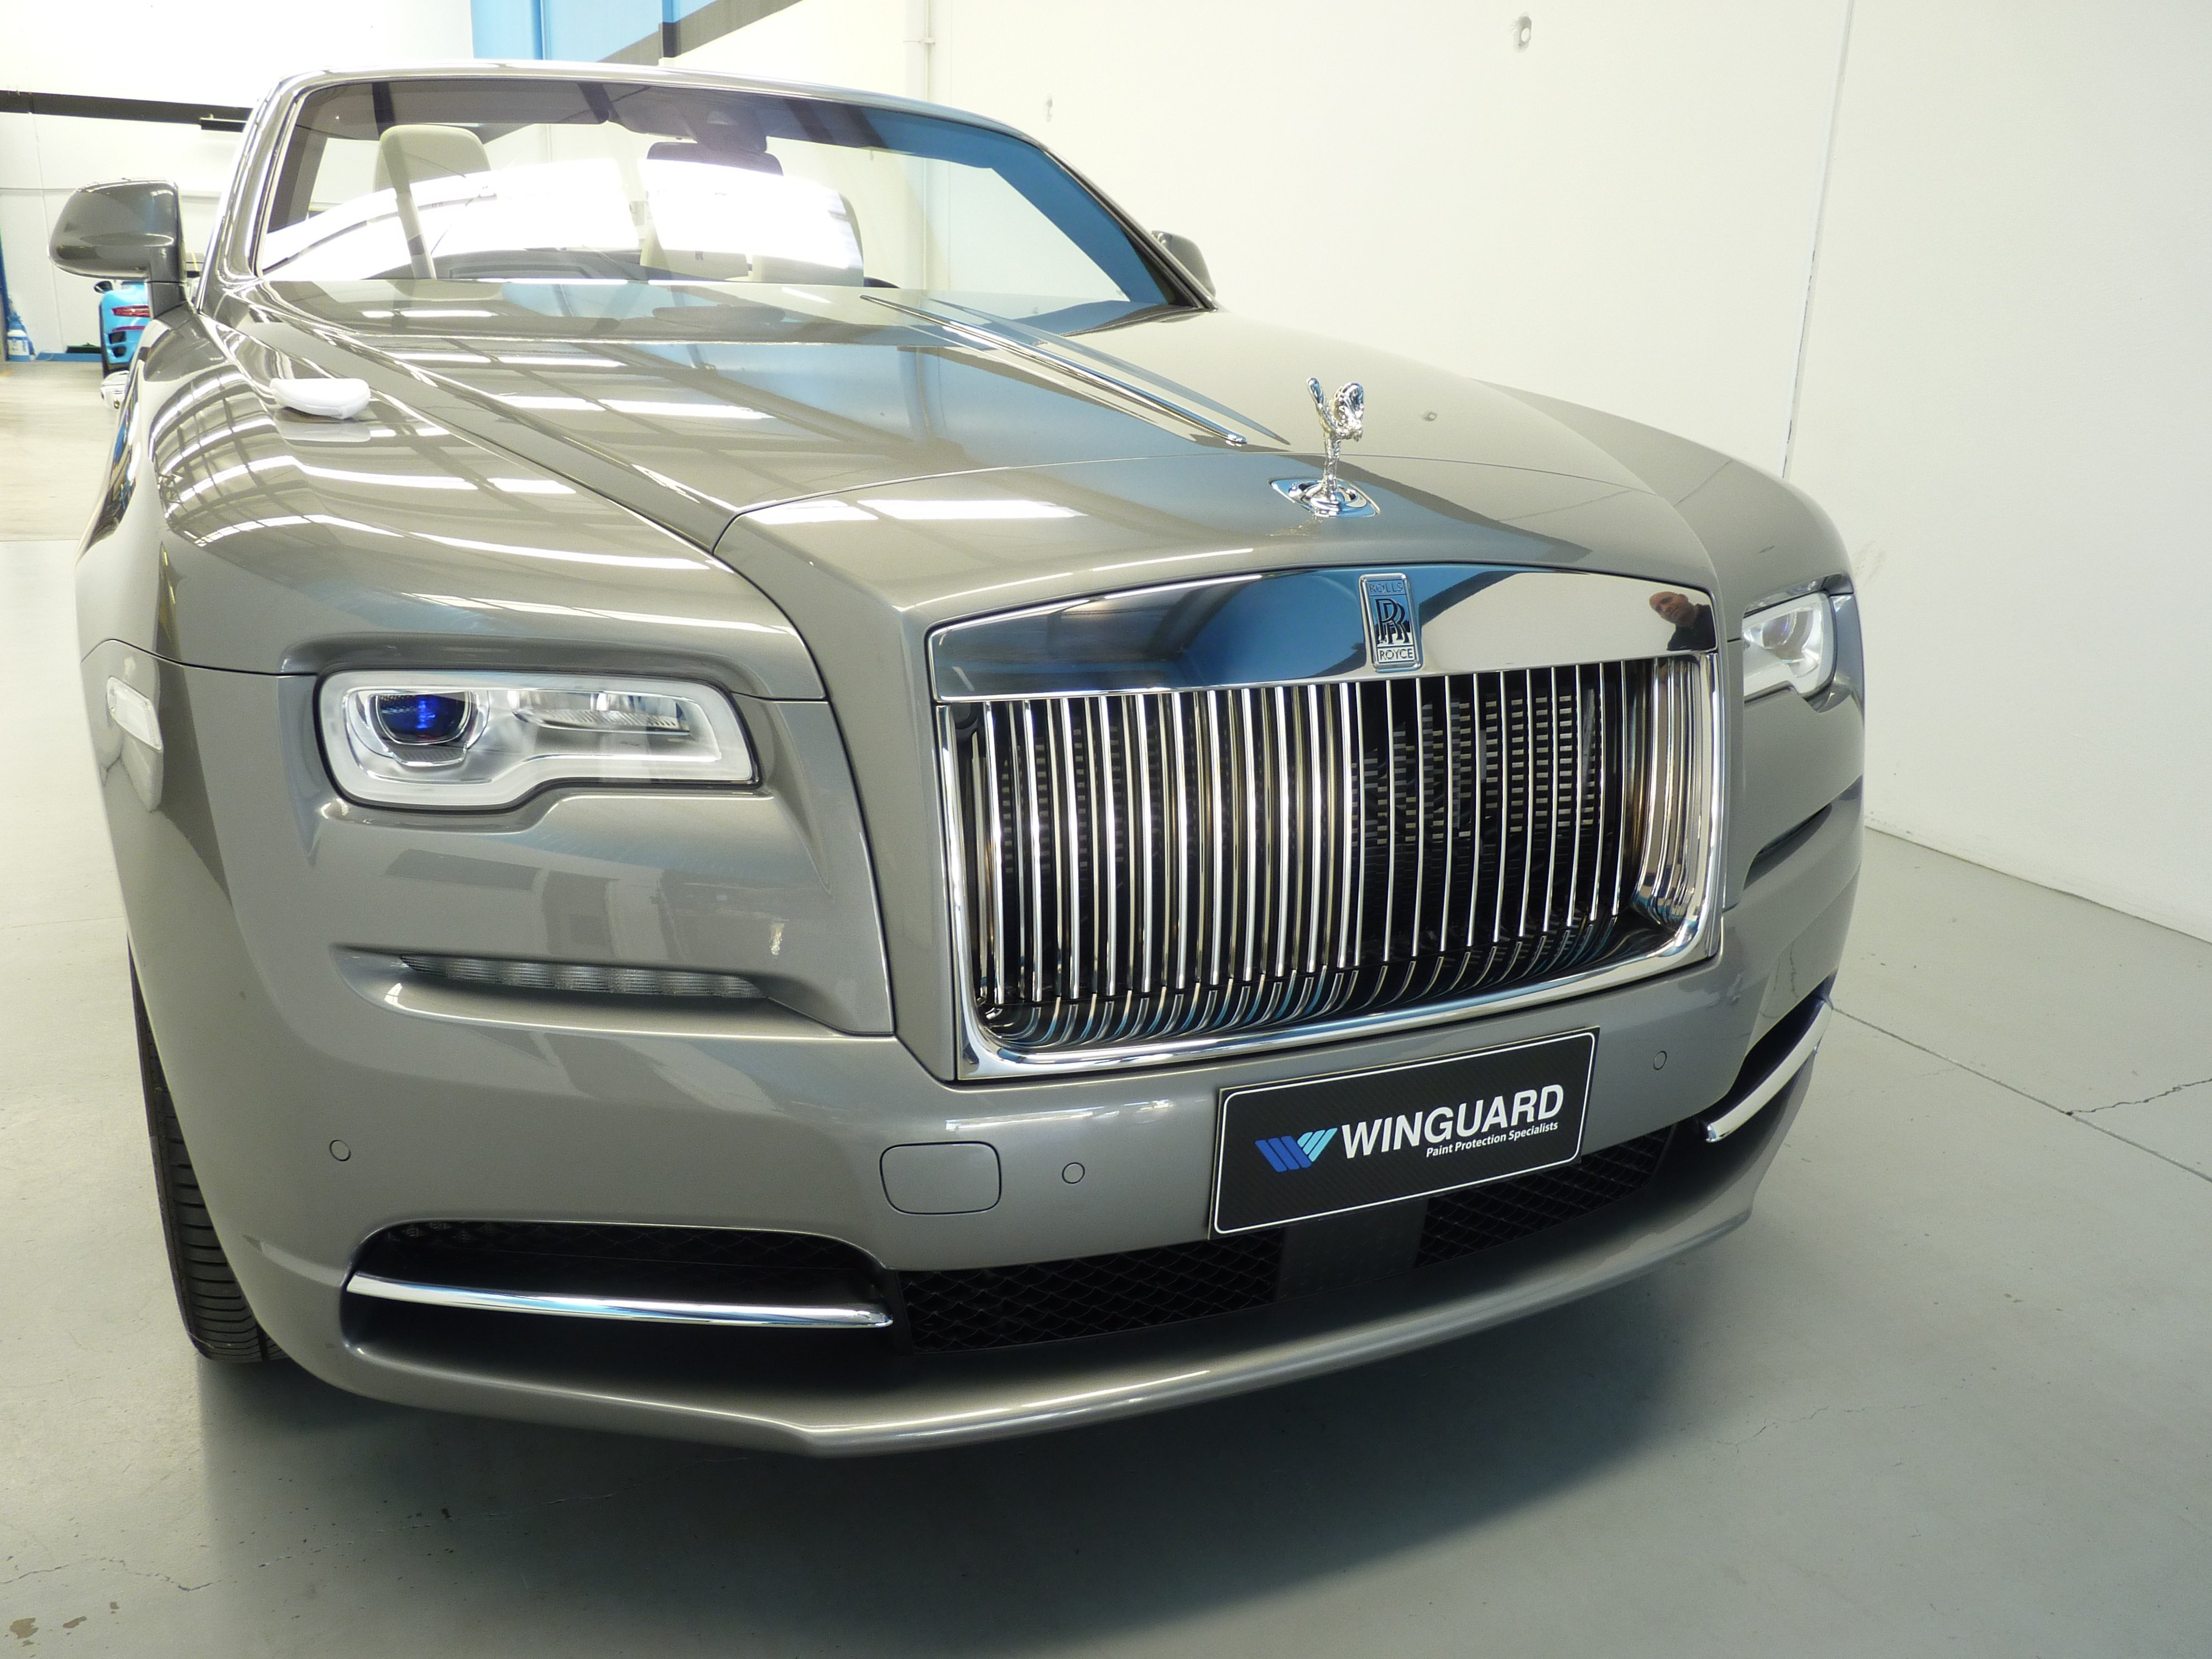 rolls royce, dawn, convertible, wraith, ghost, dawn, grand tourer, phantom, cullinan, 8-speed, customised, car bra, stone chip film, paint protection film, winguard, adelaide, matte paint, adelaide, matt paint, decal, tint, XPEL, Ultimate, Stealth, winguard, adelaide, matte paint, matt paint, car bra, custom, expert wrap, xpel, suntek, opticoat, stek, 3m, adelaide paint protection, d and s, partners in grime, elite finish, south australia, australia,  customised, car bra, stone chip film, paint protection film, winguard, adelaide, matte paint, adelaide, matt paint, decal, tint, XPEL, Ultimate, Stealth,  winguard, adelaide, matte paint, matt paint, car bra,  custom, expert wrap, xpel, suntek, opticoat, stek, 3m, adelaide paint protection, winguard,car paint protection, paint protection, paint protection adelaide, paint protection film, car wrap adelaide, car service, car service near me, paint back near me, full car wrap, 3m vinyl wrap near me, adelaide paint protection, audi adelaide, auto paint touch up near me, british paint, car, car bra, car customisation, car paint protection film, car pick up service, car protection, car protection film, car protection service, car service adelaide, car servie, car spoiler installation near me, car vinyl wrap, car wraps, car wraps near me, clear bra, ducati, gmh, gtechniq, japanese car imports, matte car wrap, new car paint protection, opticoat, paint protection car, paint protection near me, paint specialist protection, protection film, service for car, specialists, vehicle paint protection, vinyl, vinyl car wrap, vinyl wrap, vinyl wrap adelaide, vinyl wrap car, wrapped car, xpel ppf, winguard, wingard, wingard adelaide, winguard adelaide